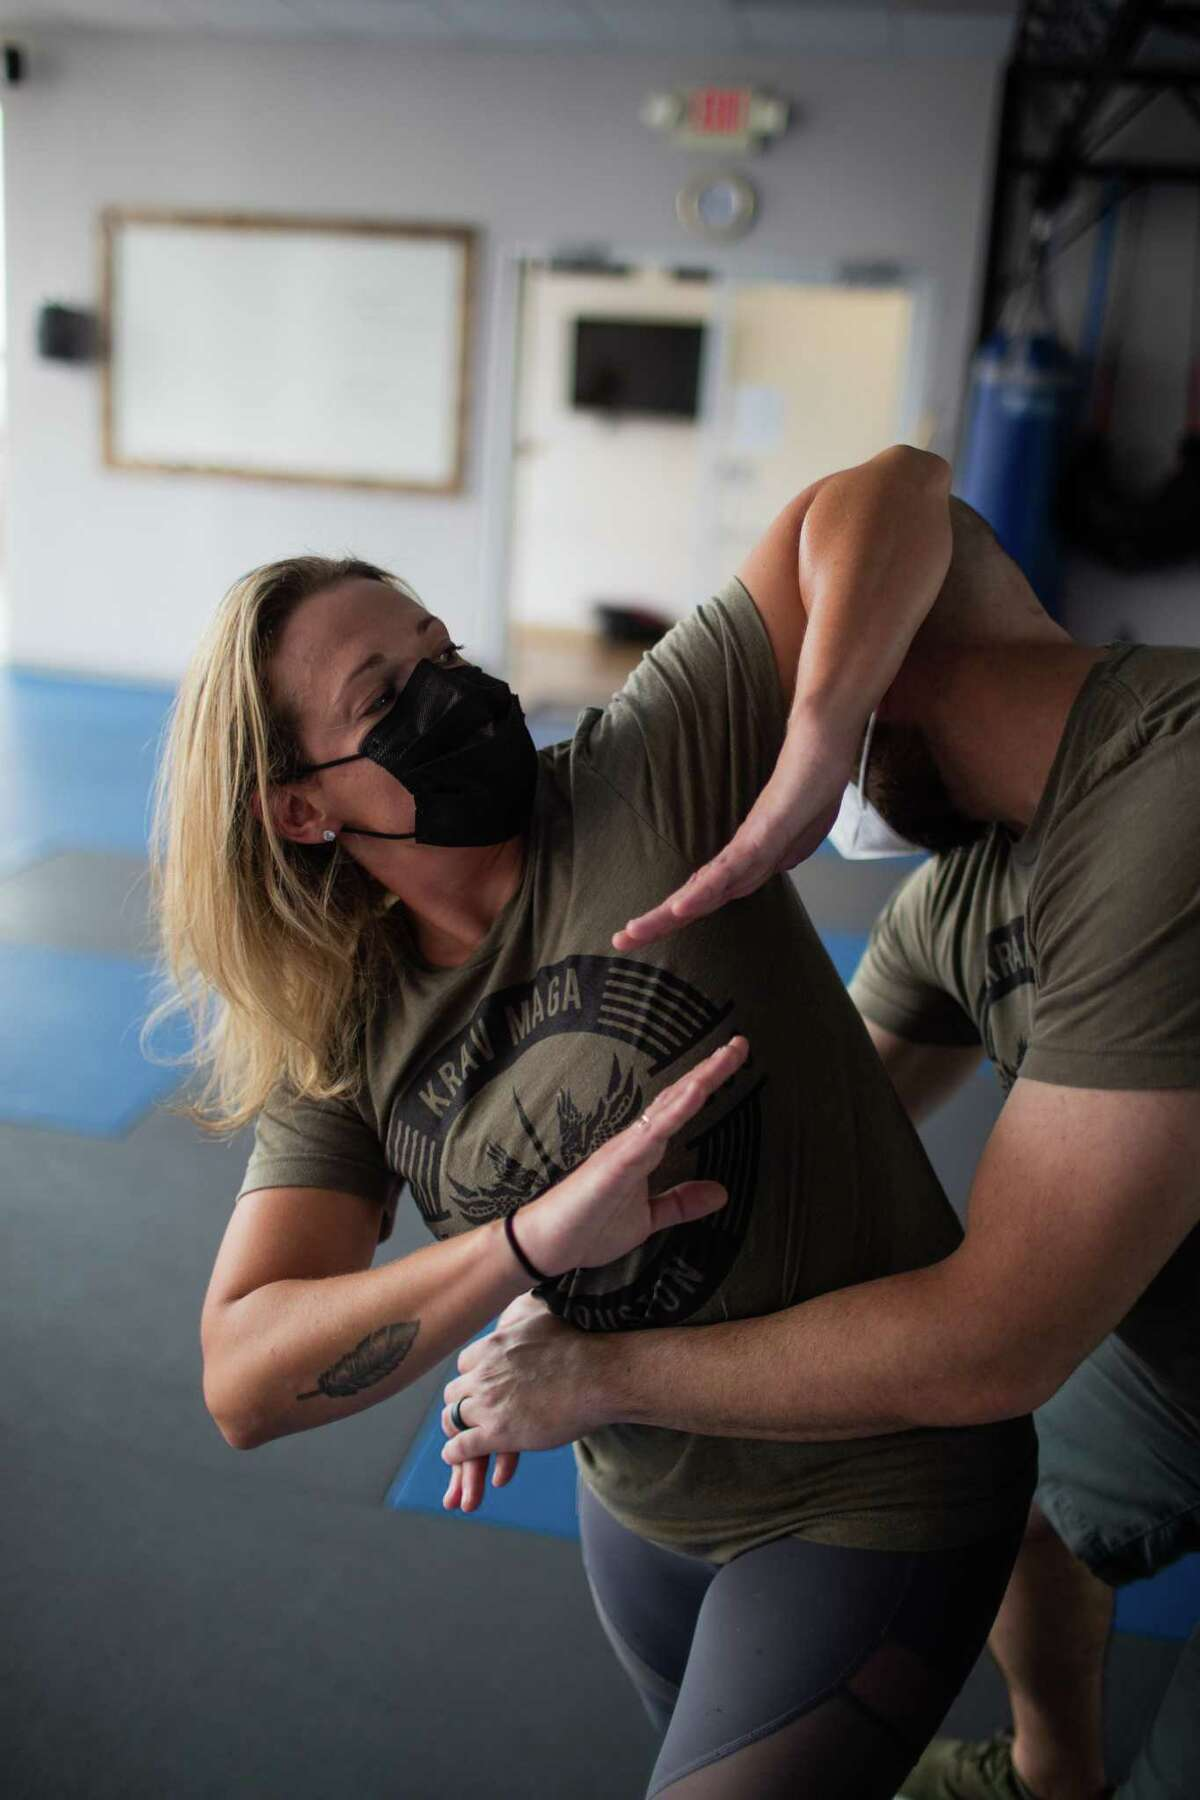 Sheryl Weinstock demonstrates self defense techniques with her instructor James Newman at Krav Maga Houston where she trains, Friday, Nov. 13, 2020, in Houston.